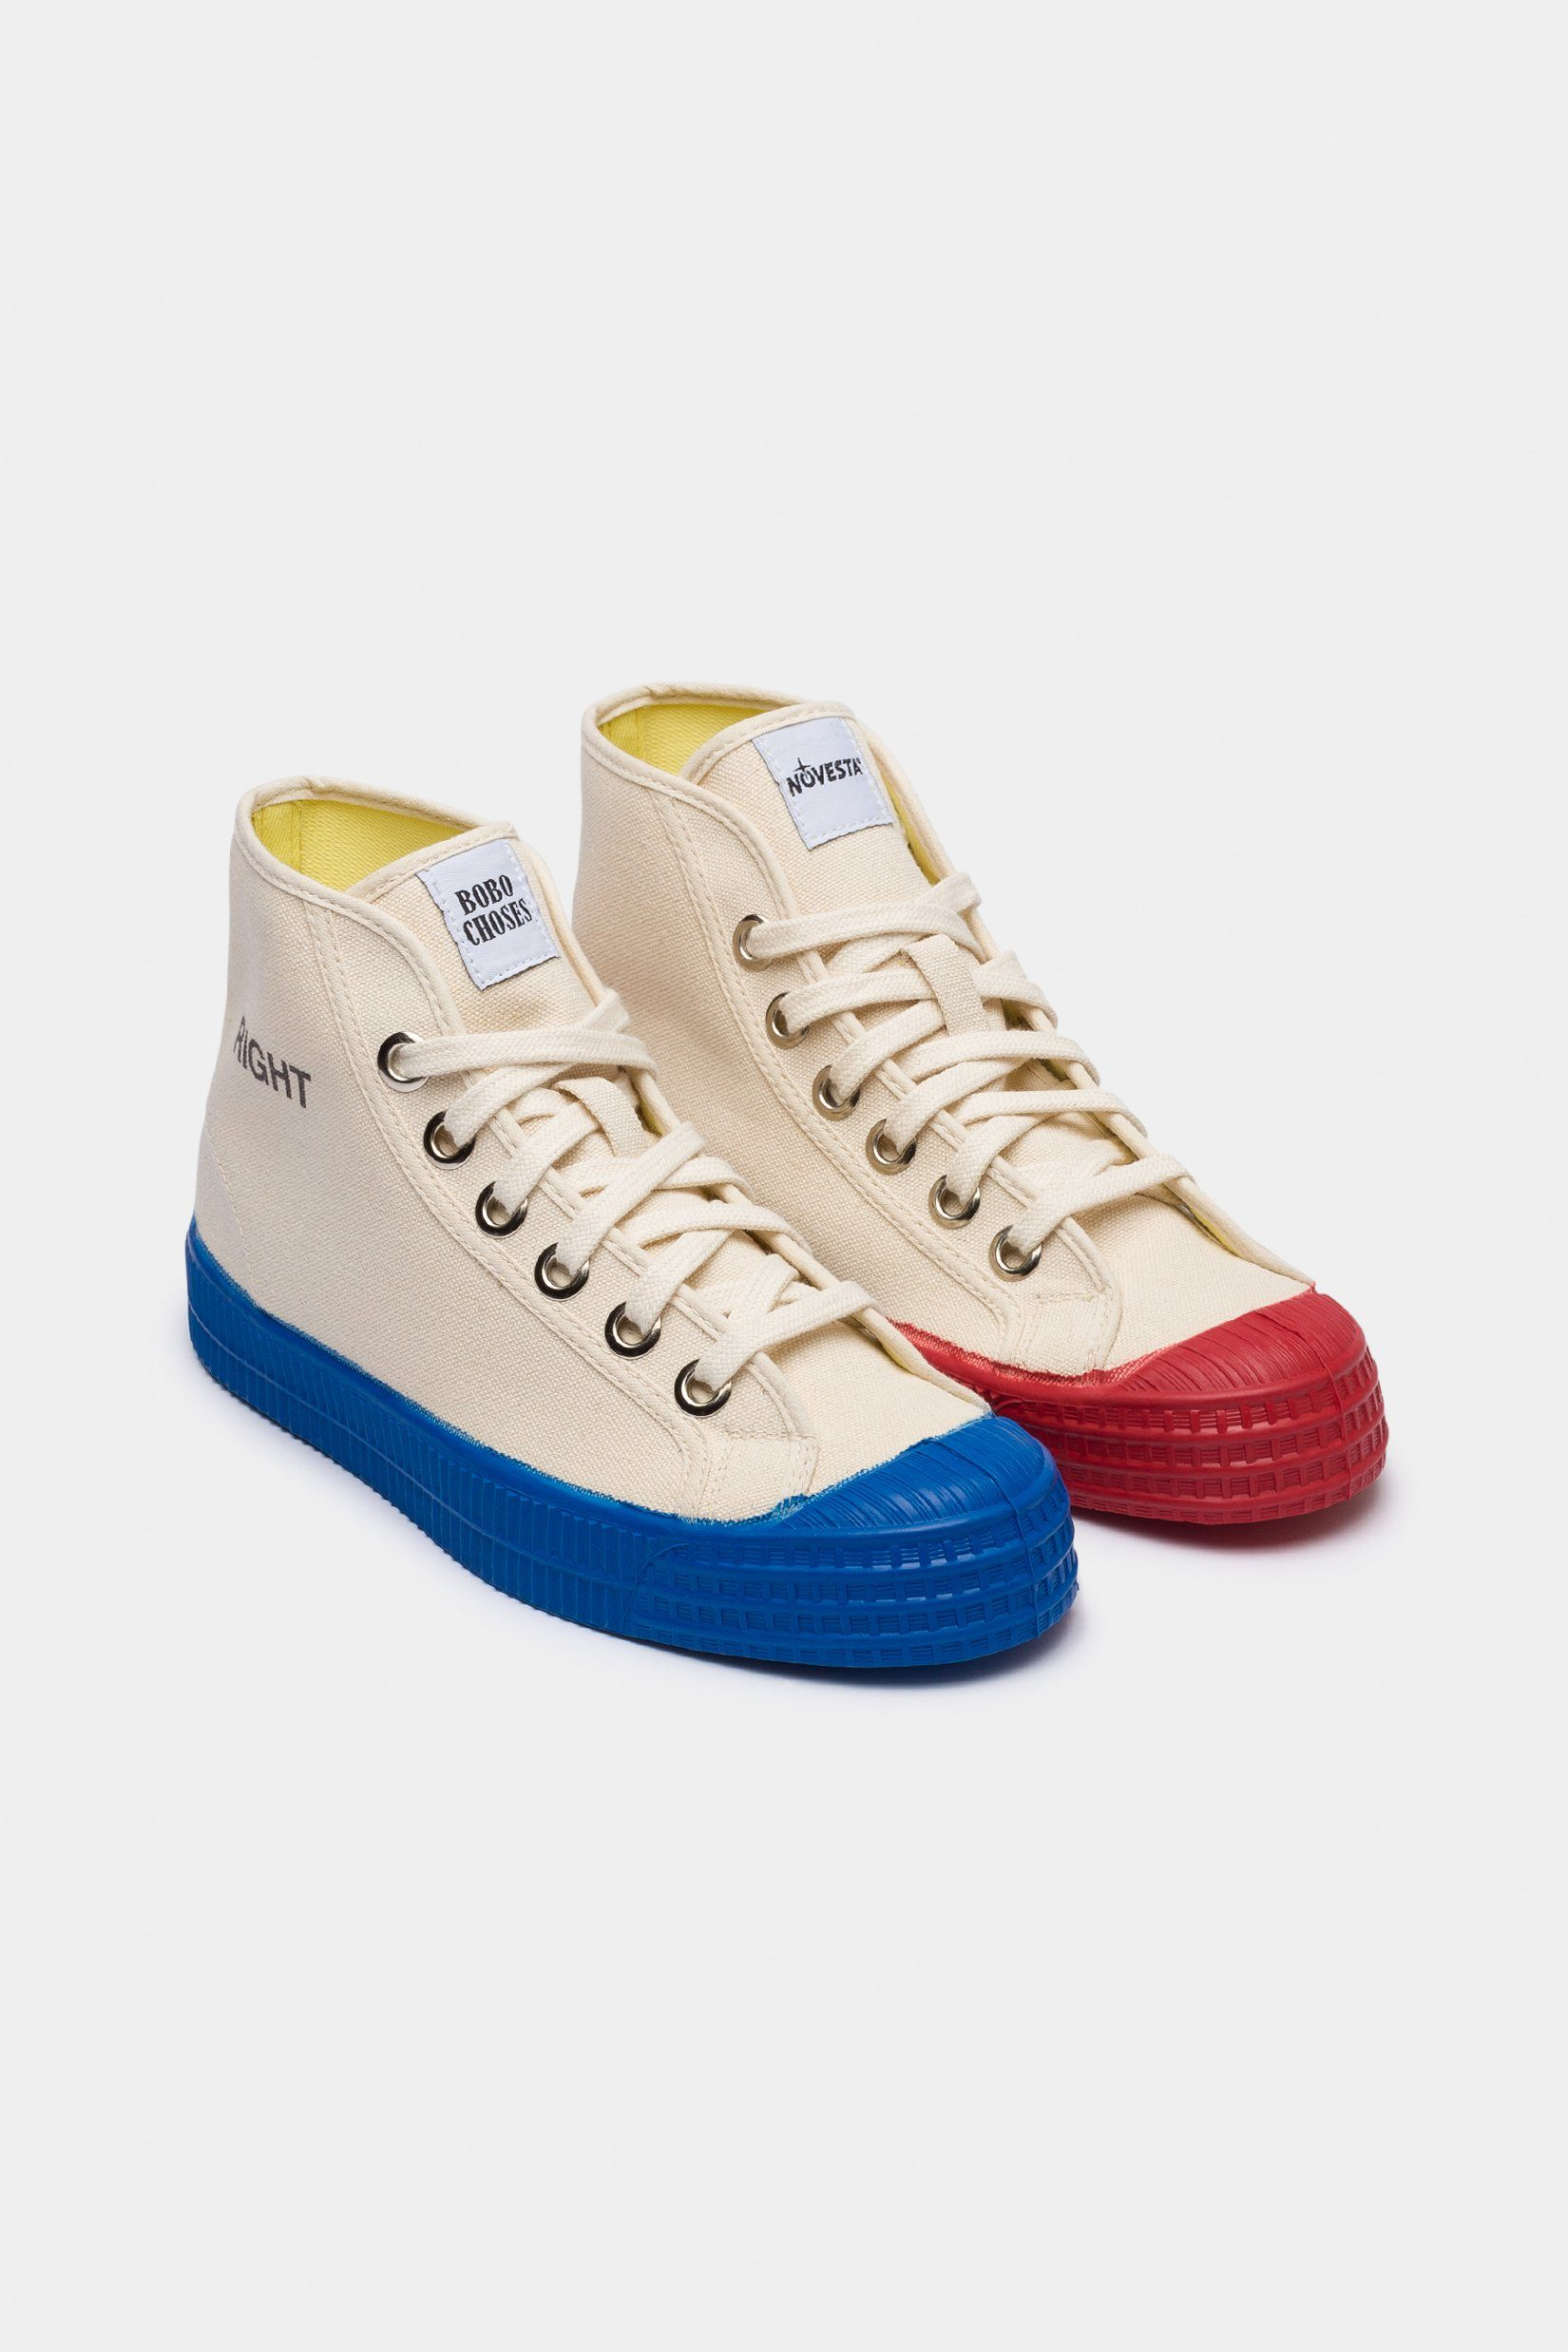 Blue and Red Womens Trainers Turtledove Bobo Choses | Zirkuss